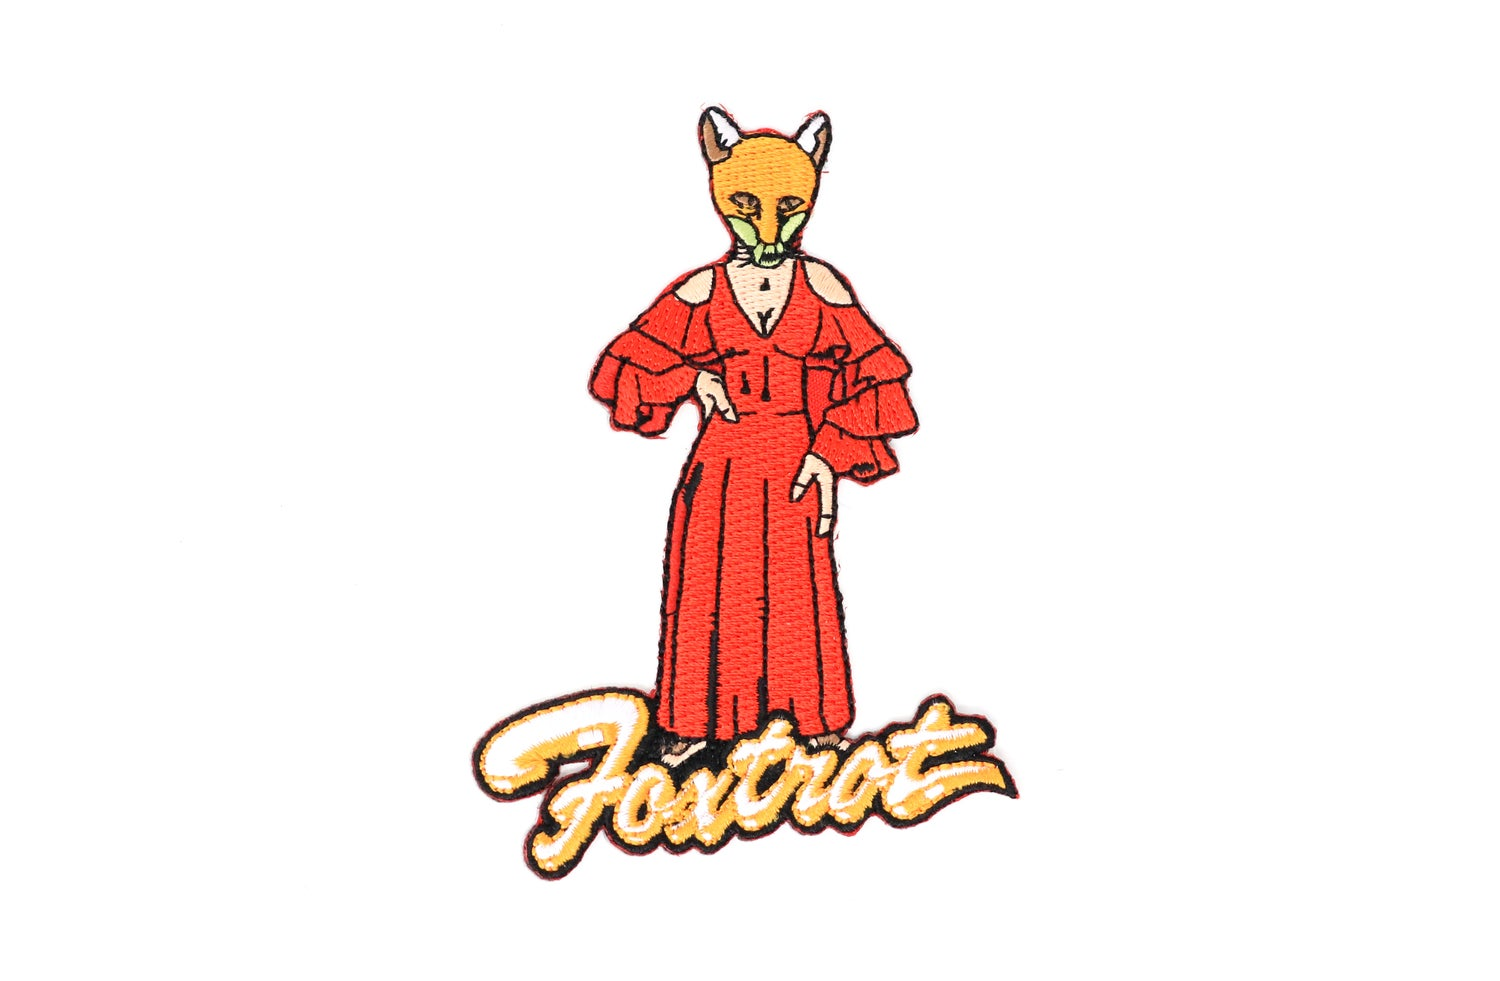 Image of Genesis - Foxtrot Iron On Patch